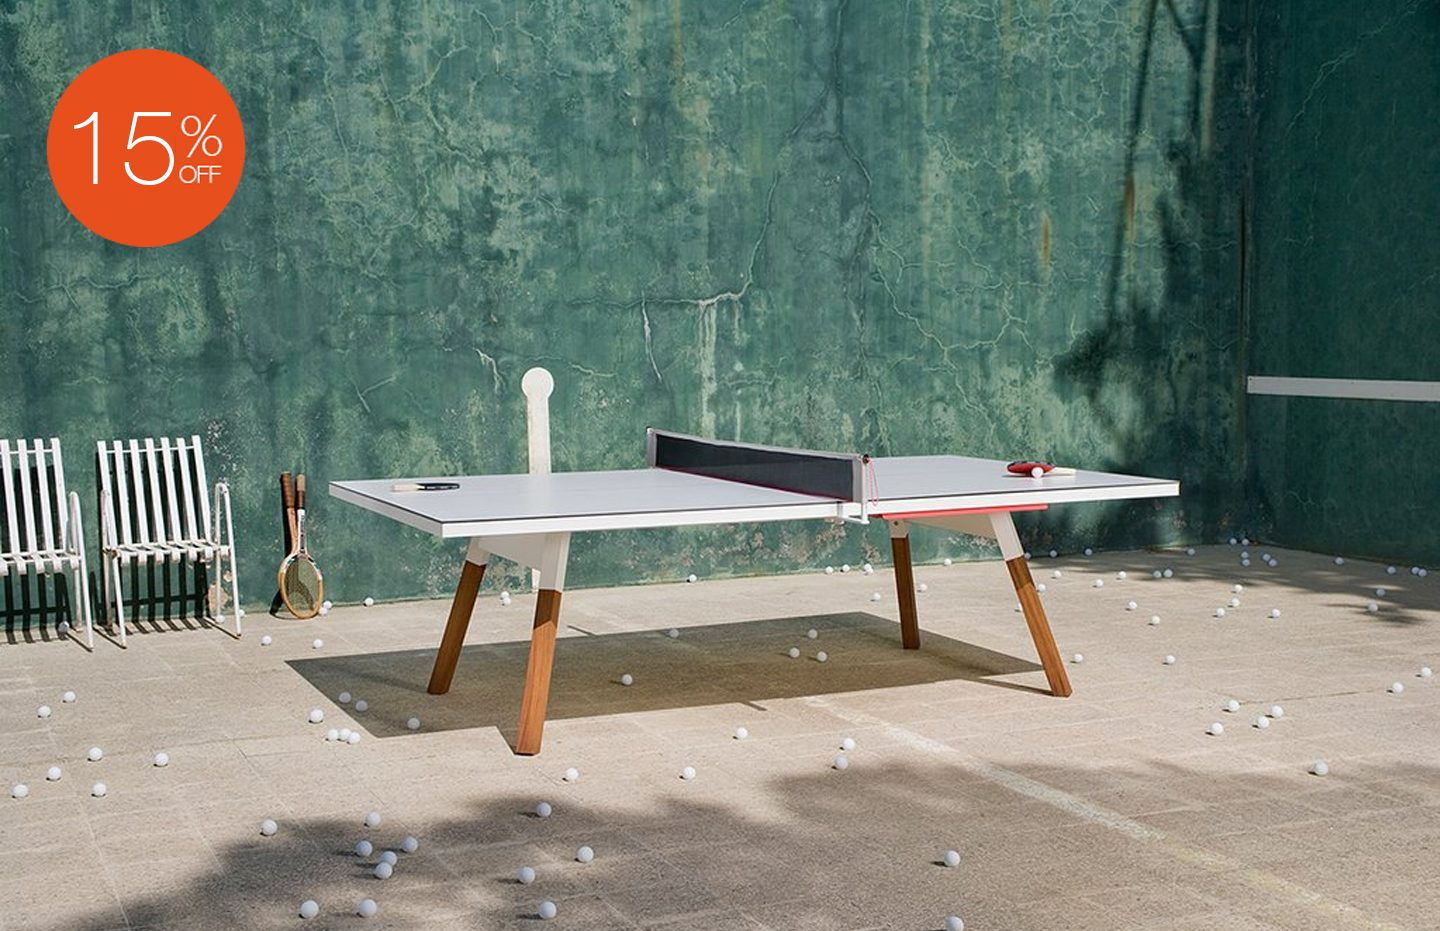 YOU AND ME TABLE TENNIS TABLE BY RS BARCELONA